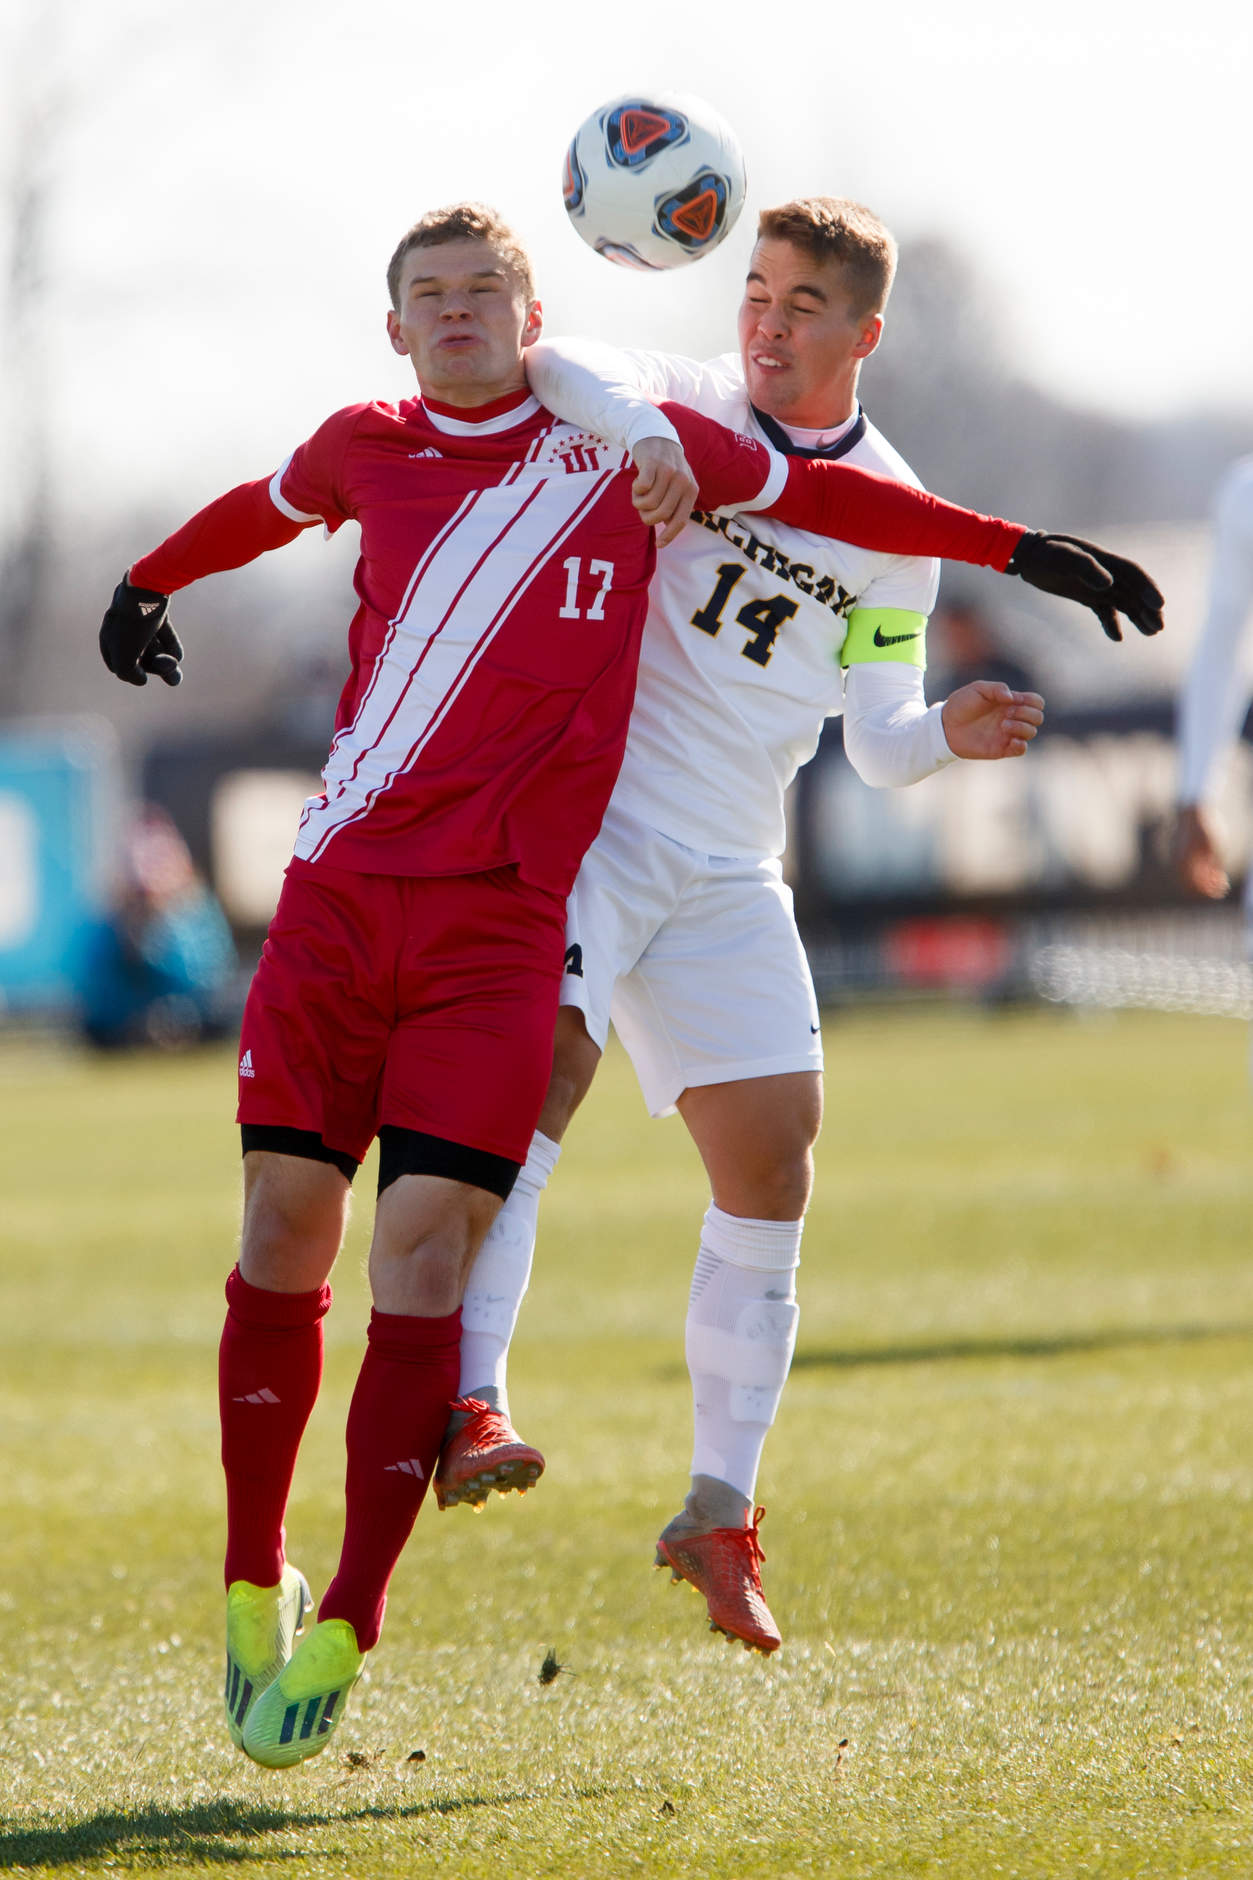 Michigan's Robbie Mertz (14) and Indiana's Jeremiah Gutjahr (17) compete for a header during the Big Ten Men's Soccer Tournament championship game at Grand Park in Westfield, Indiana on Sunday, Nov. 11, 2018. (Photo by James Brosher)